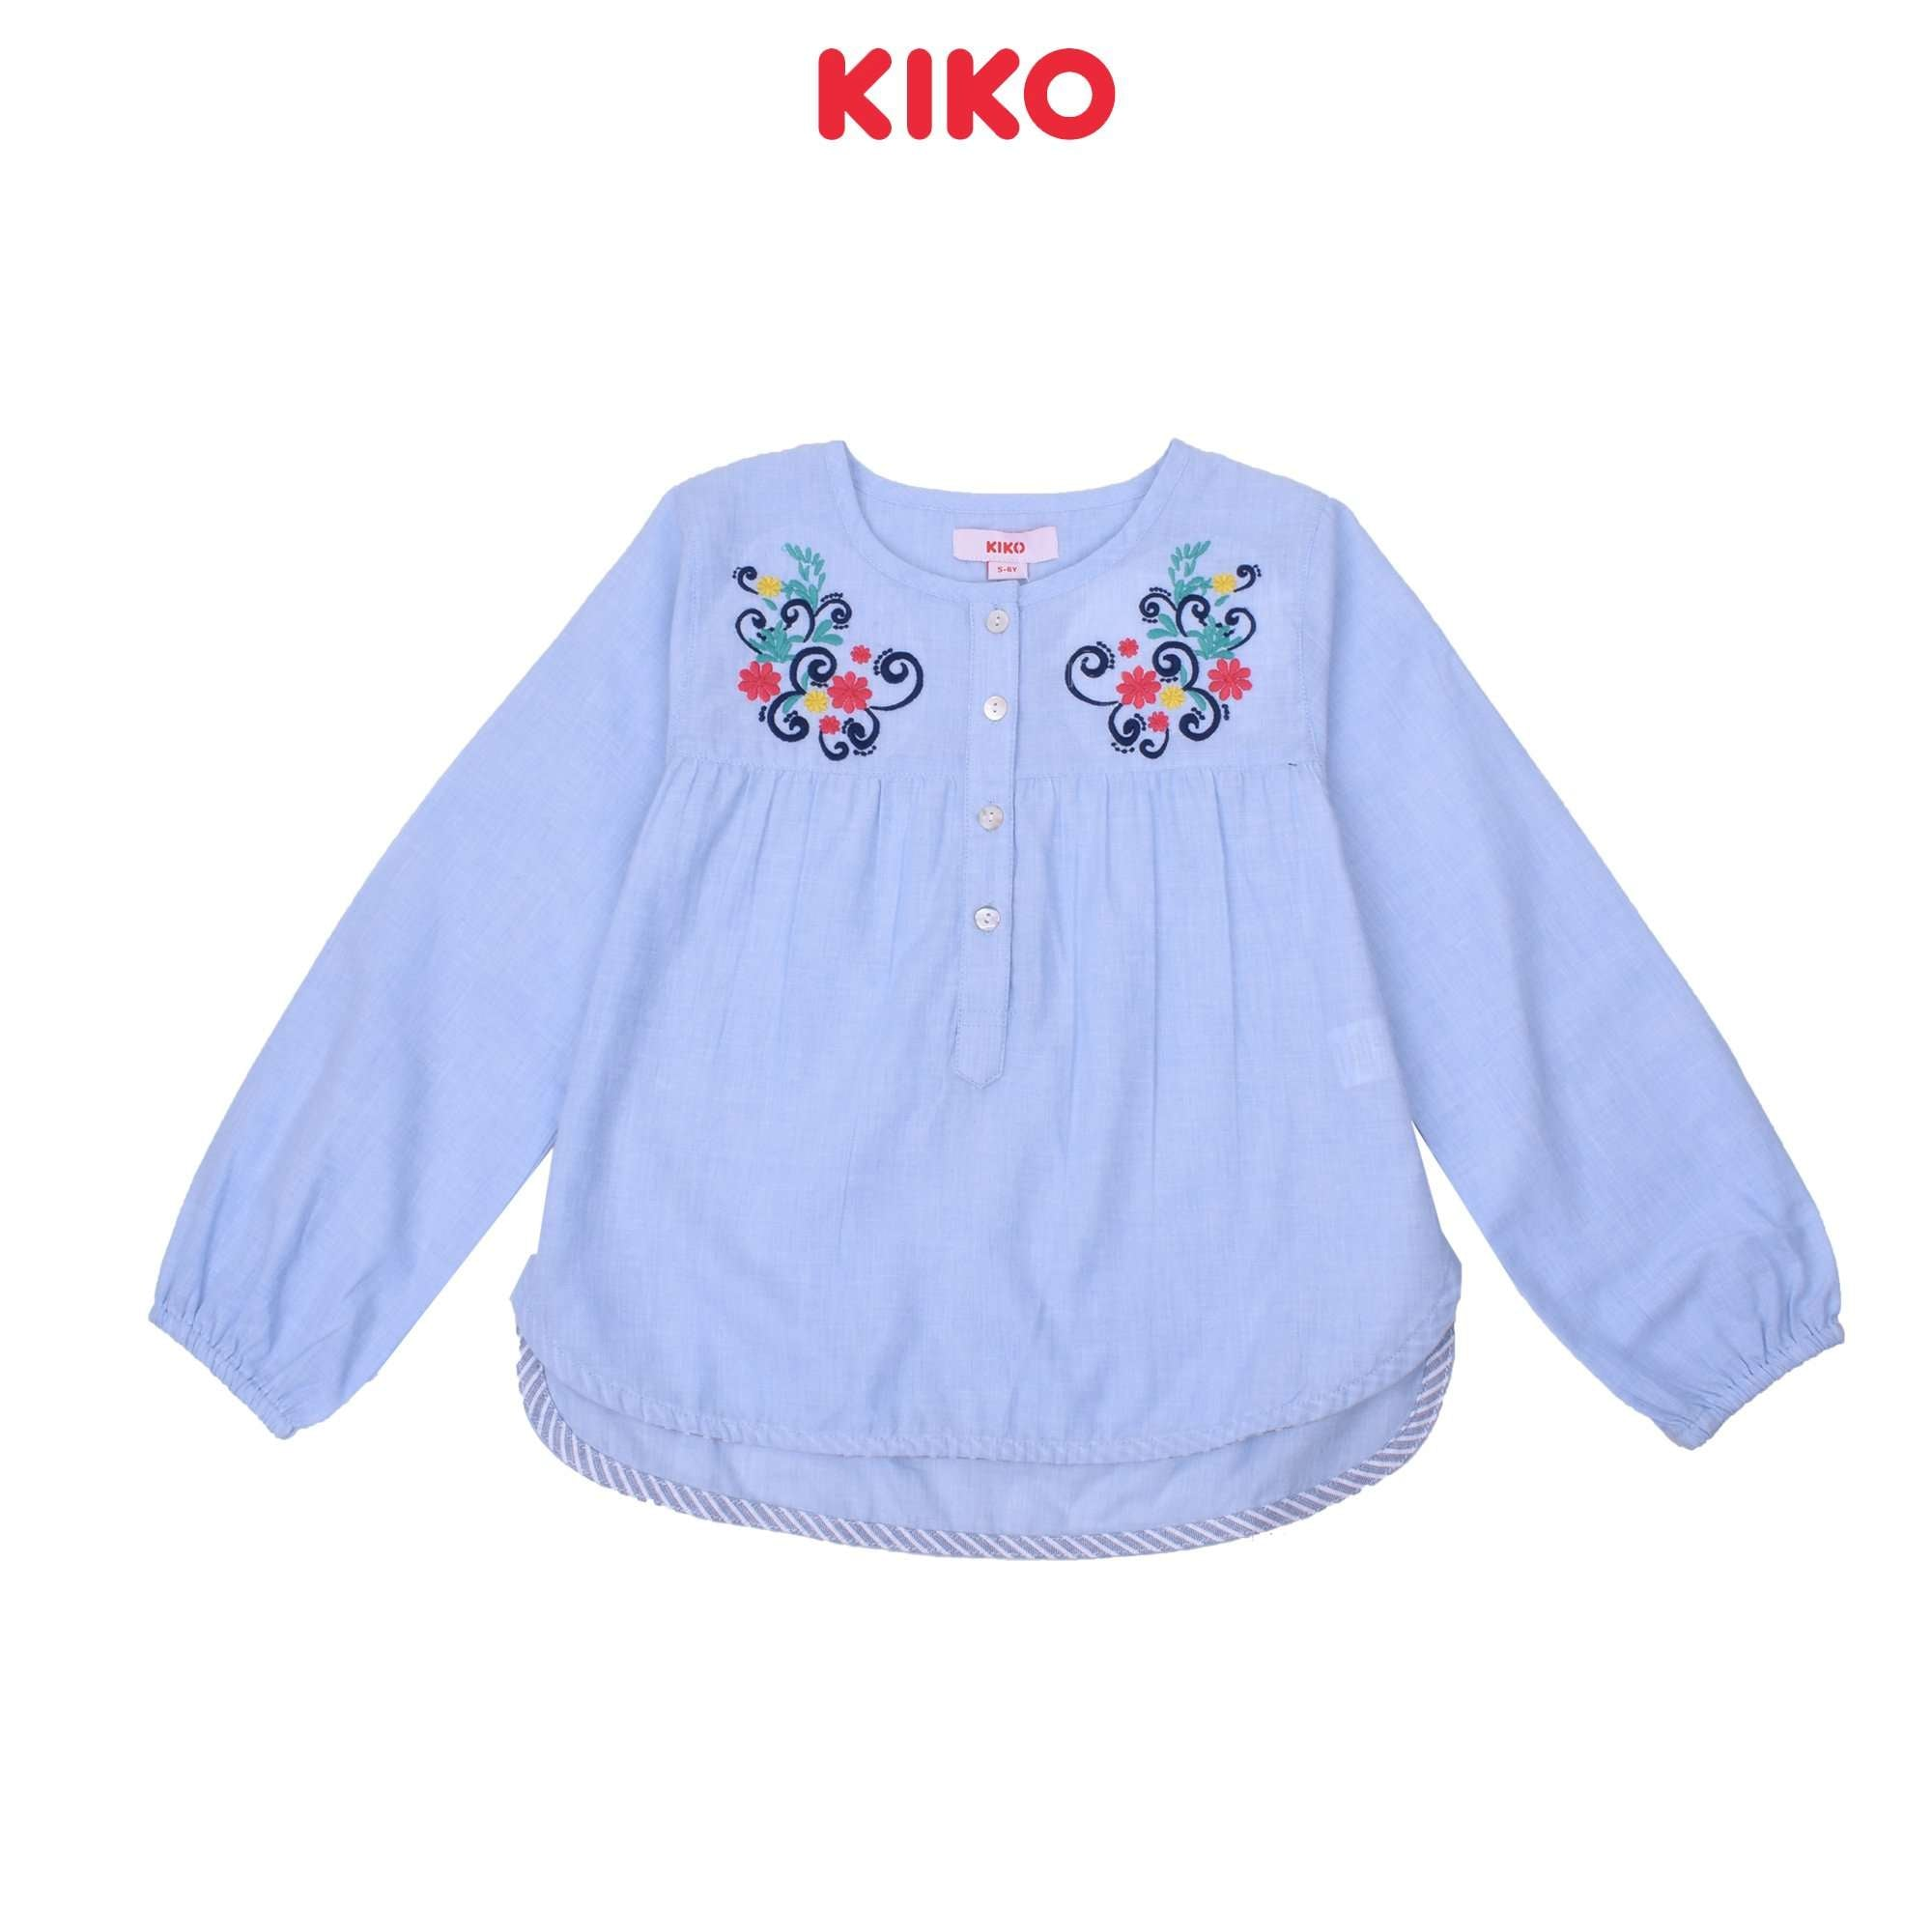 KIKO Girl Long Sleeve Blouse K925001-1545-L5 : Buy KIKO online at CMG.MY